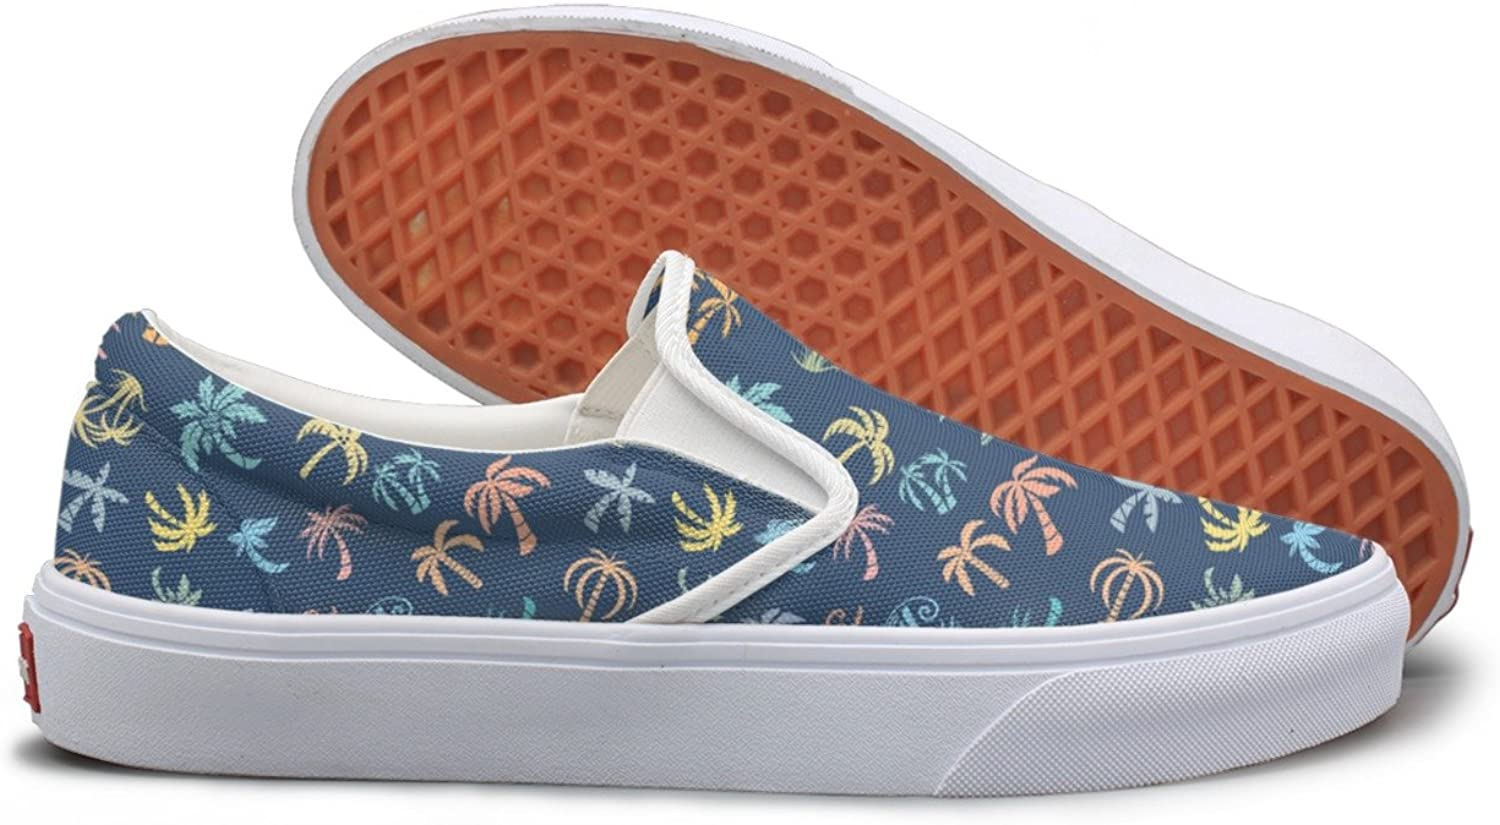 Palms Pattern Vector Image Comfortable Sneakers For Women Wide Width